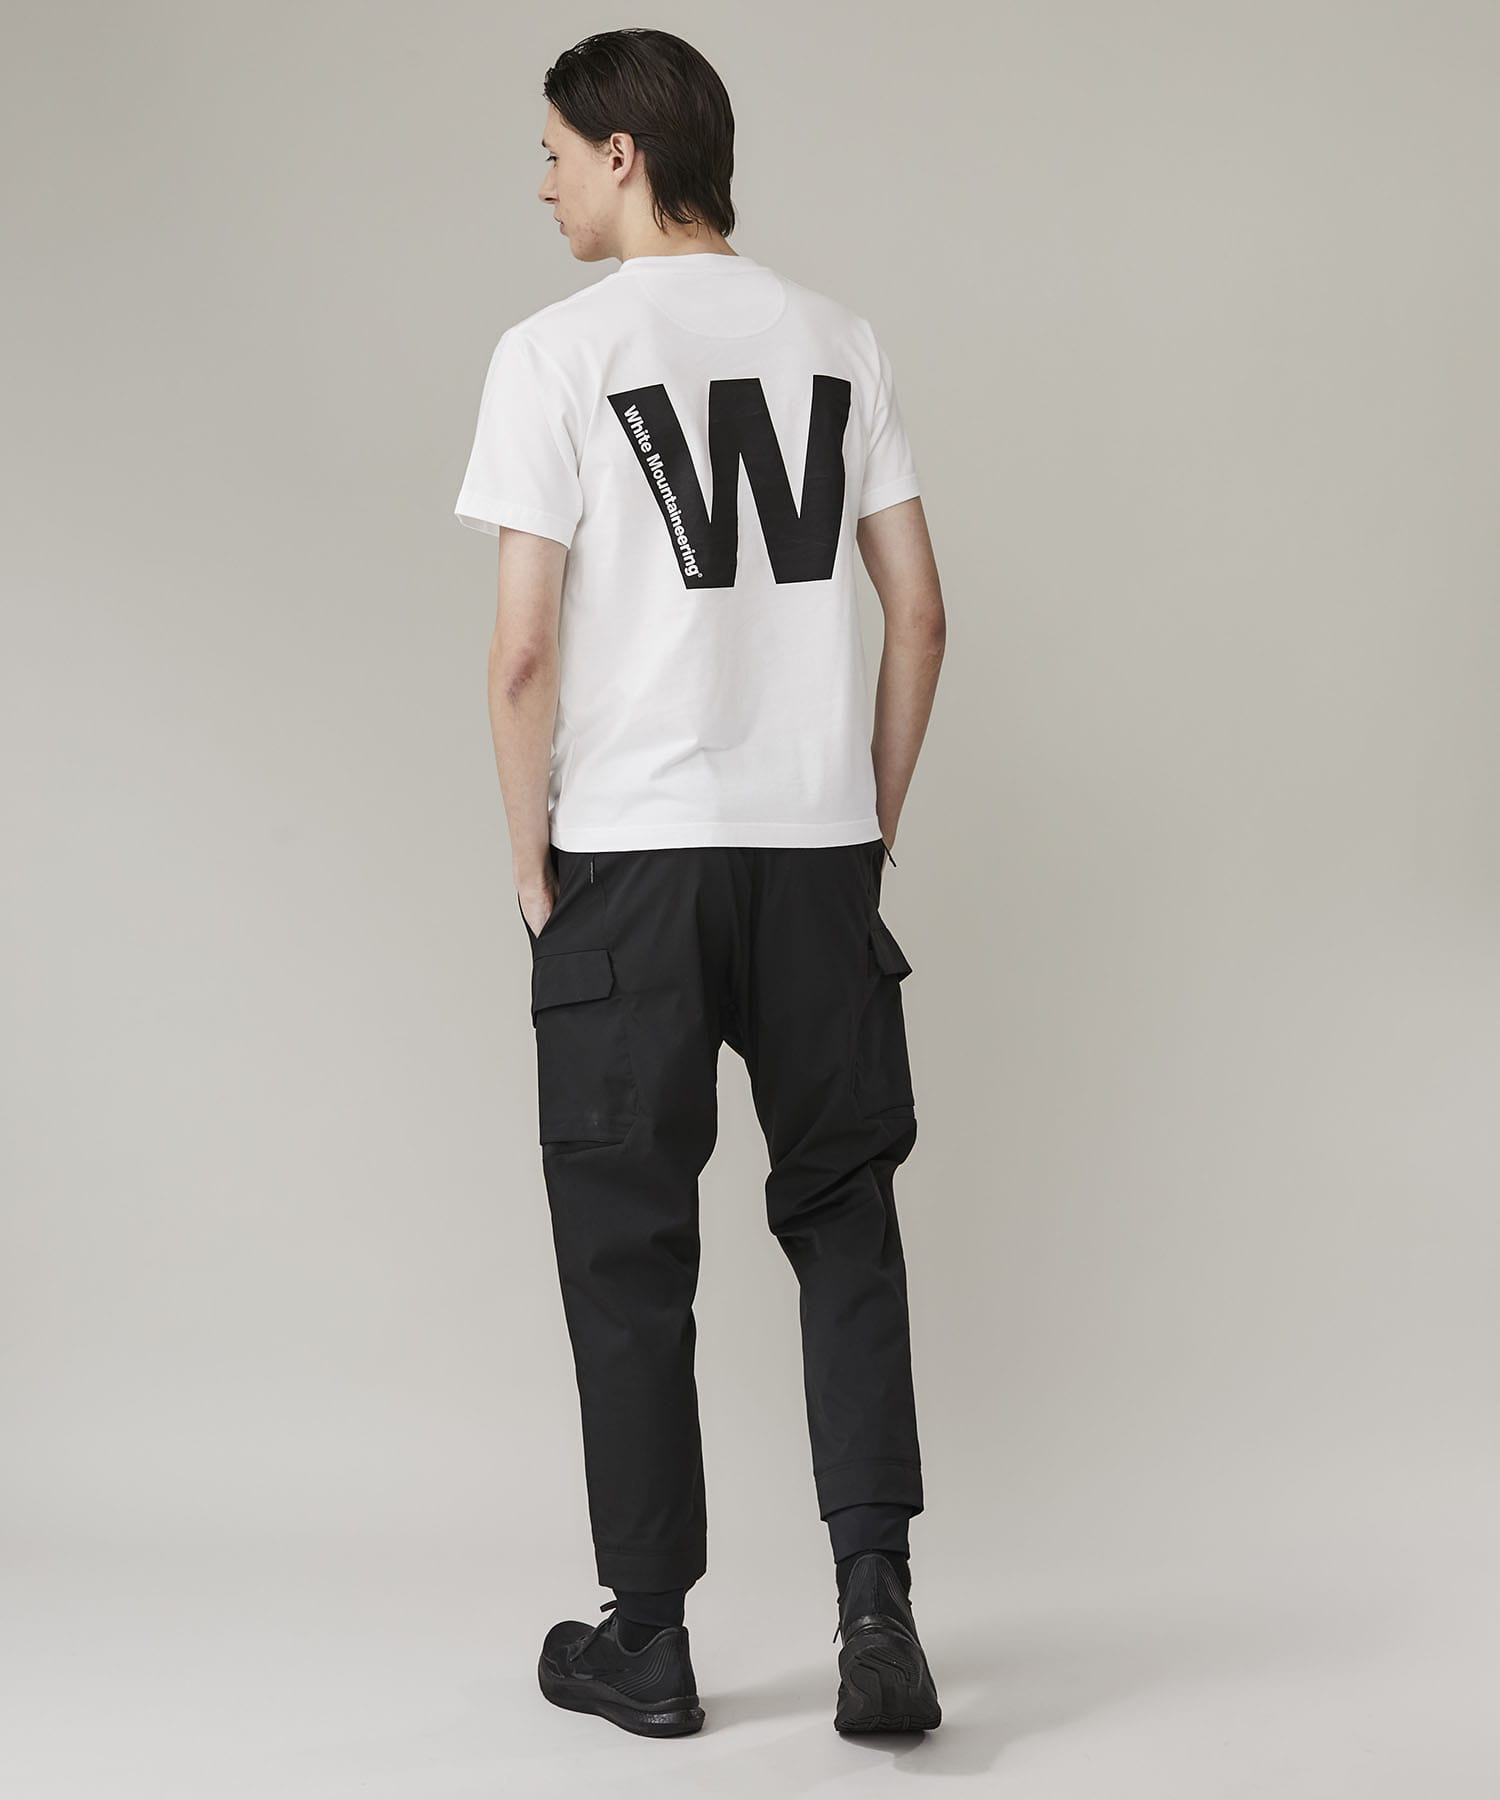 BIG W LOGO PRINTED T-SHIRT White Mountaineering